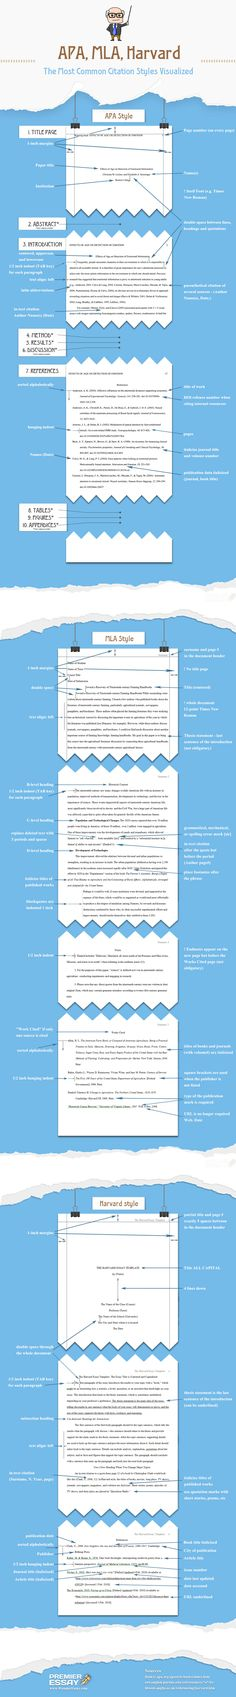 how to create a mind map thesis chemistry and academic writing apa mla harvard the most common citation styles visualized infographic apa style writingwriting sitesessay